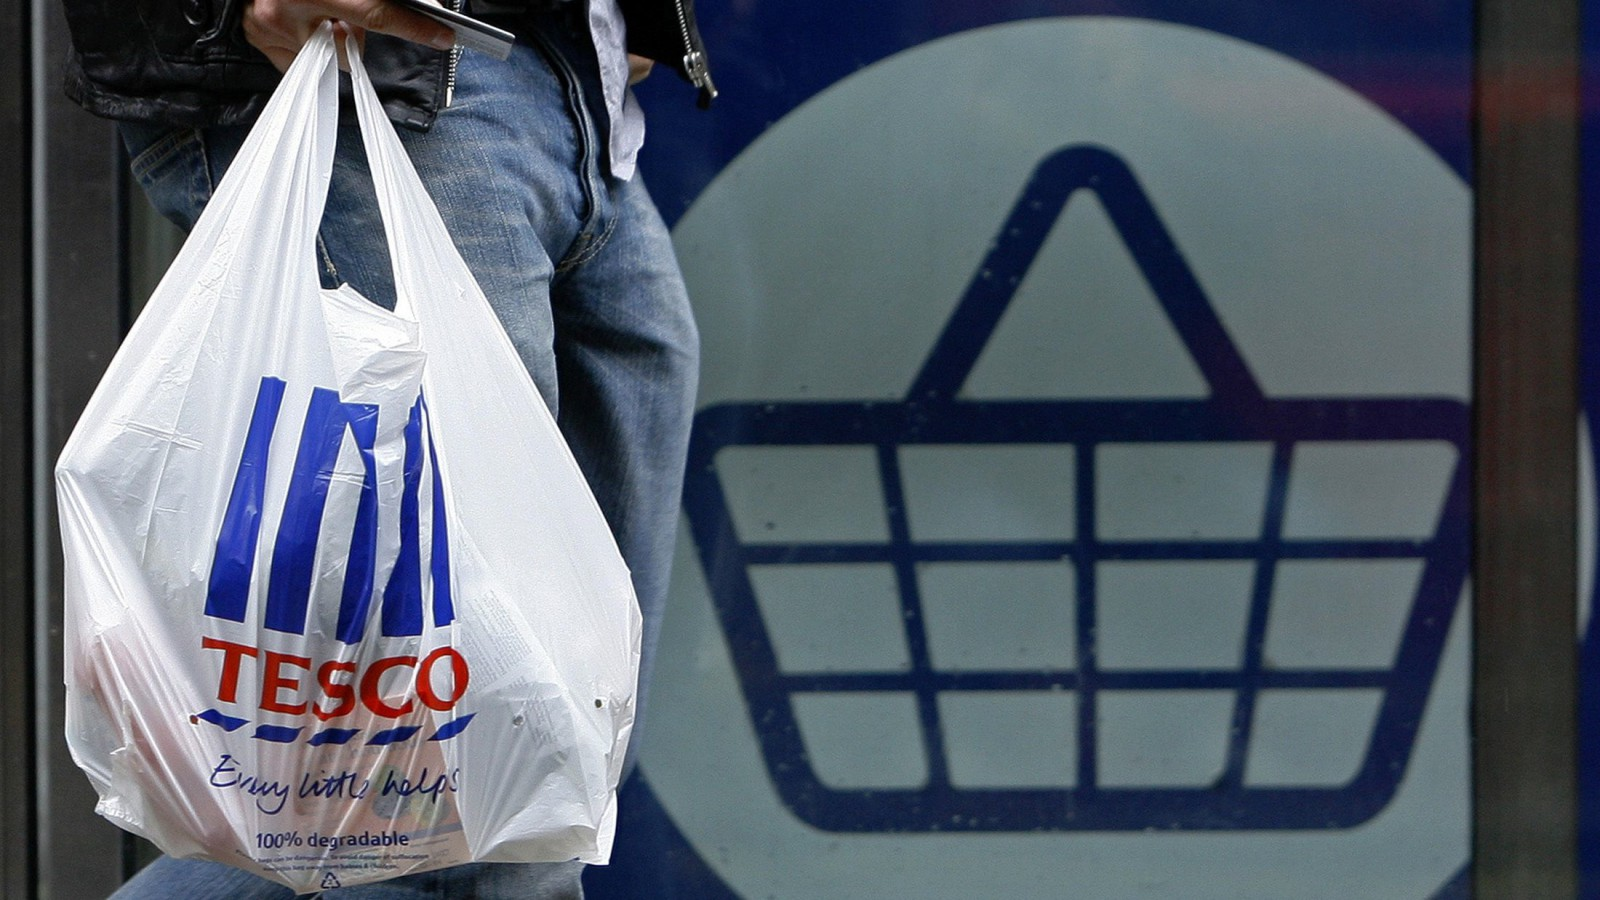 A man carries a carrier bag as he leaves a Tesco supermarket.